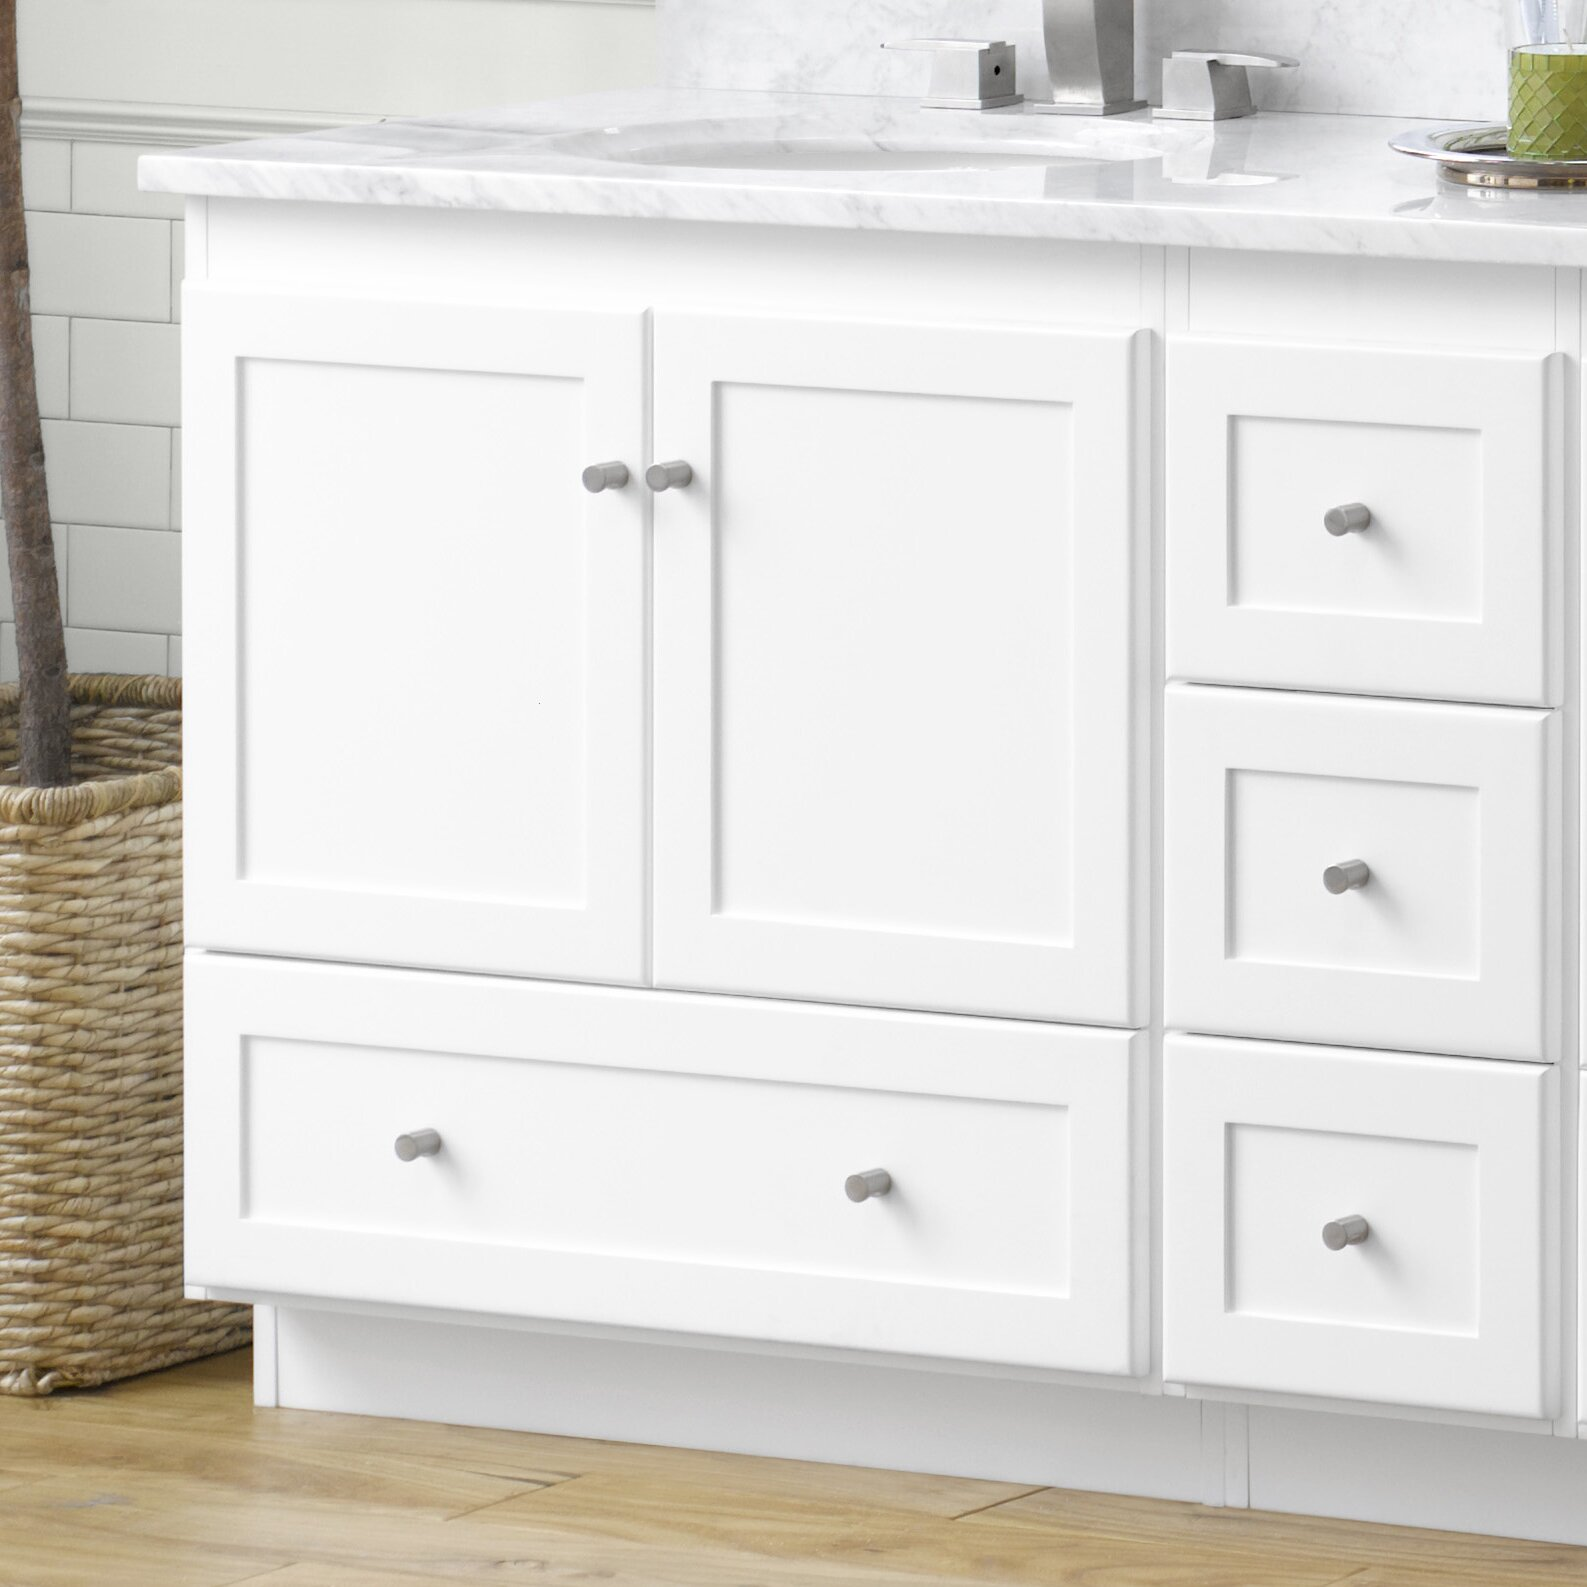 31 Bathroom Vanity Cabinet Bathroom Vanity Cabinet Ronbow Modular Shaker  31ampquot Single